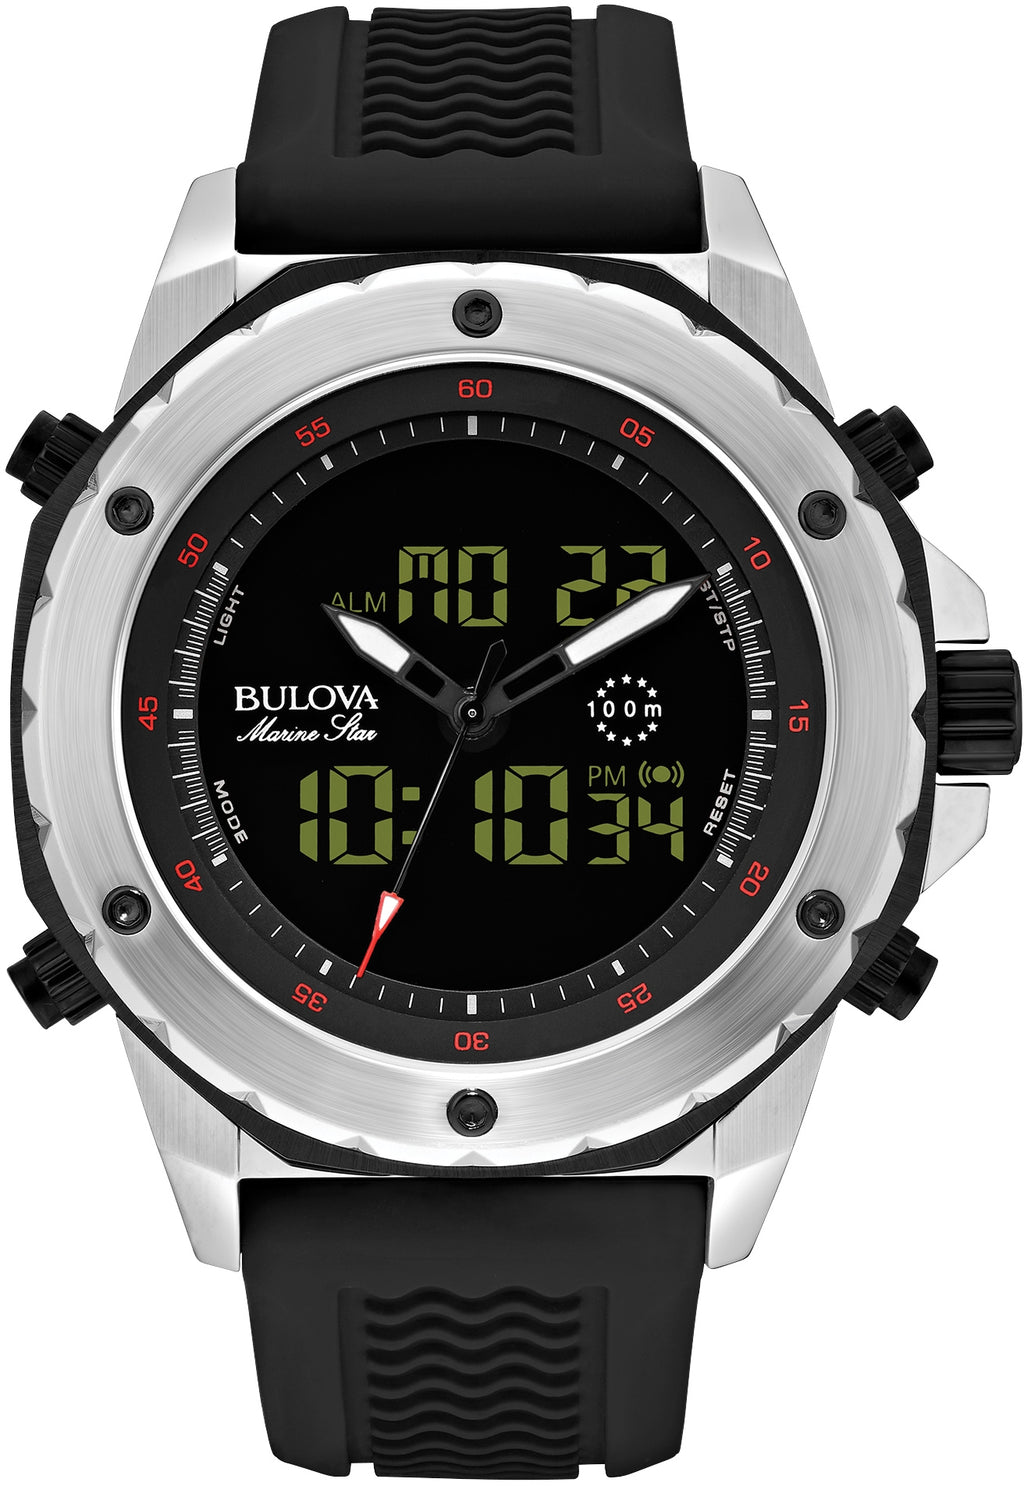 Marine Star Chronograph Analog/Digital Rubber